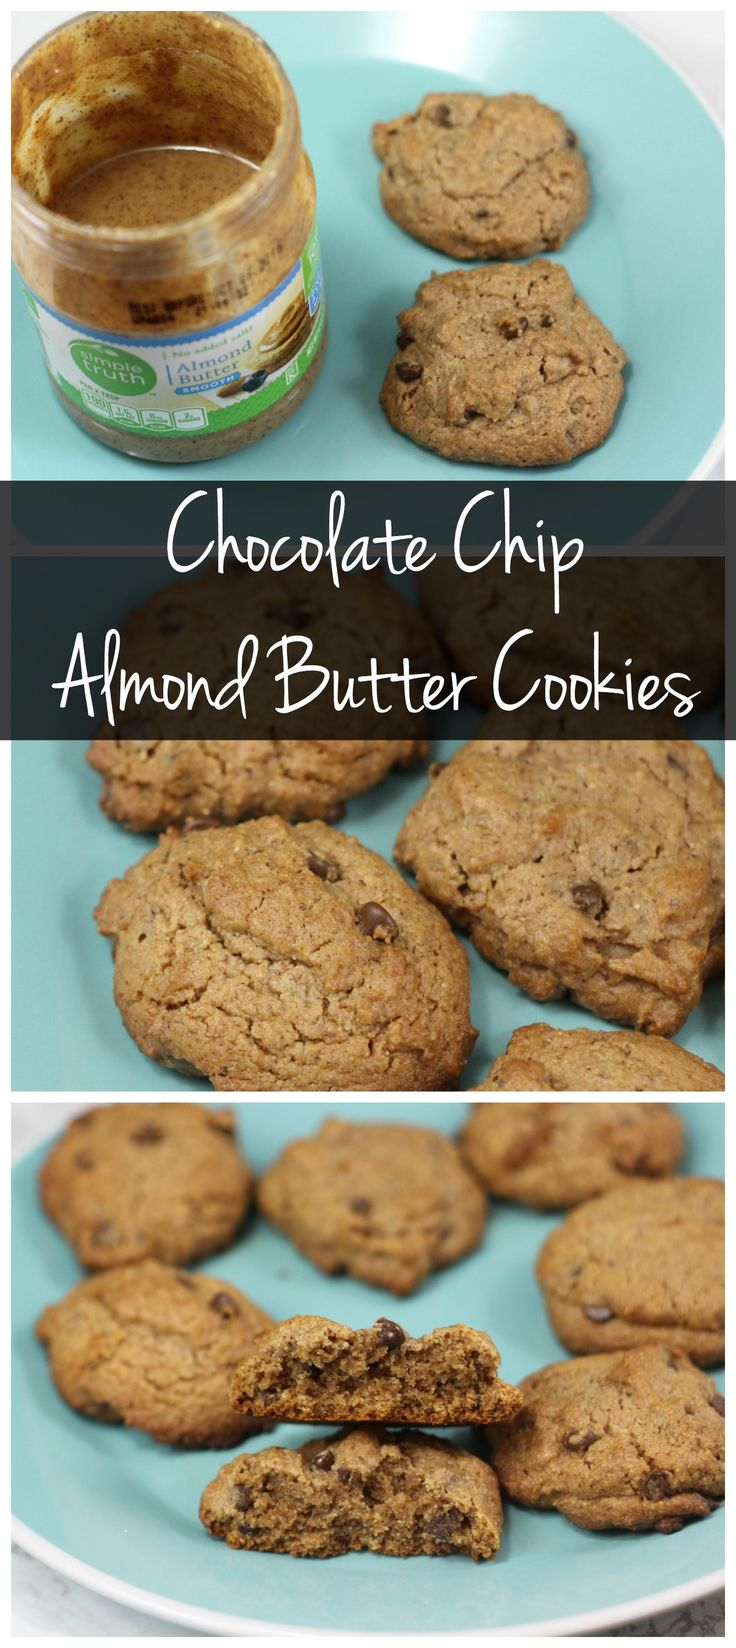 These almond butter chocolate chip cookies are made with coconut oil ...